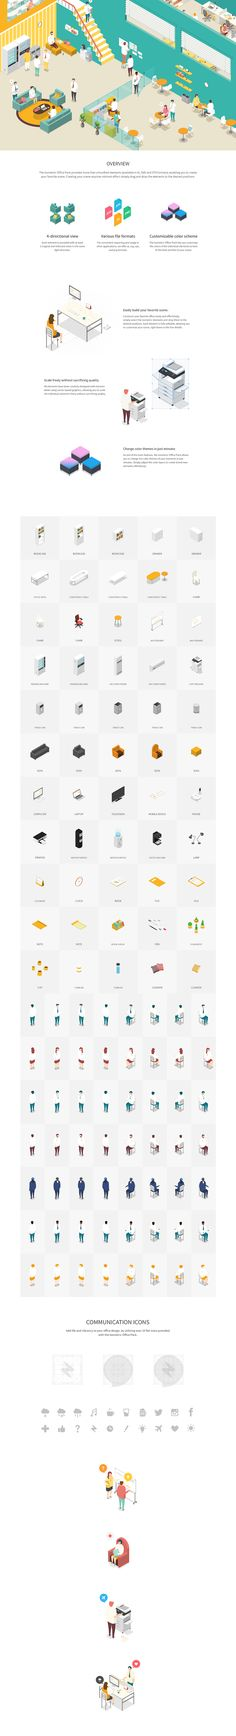 Isometric Office Pack on Behance